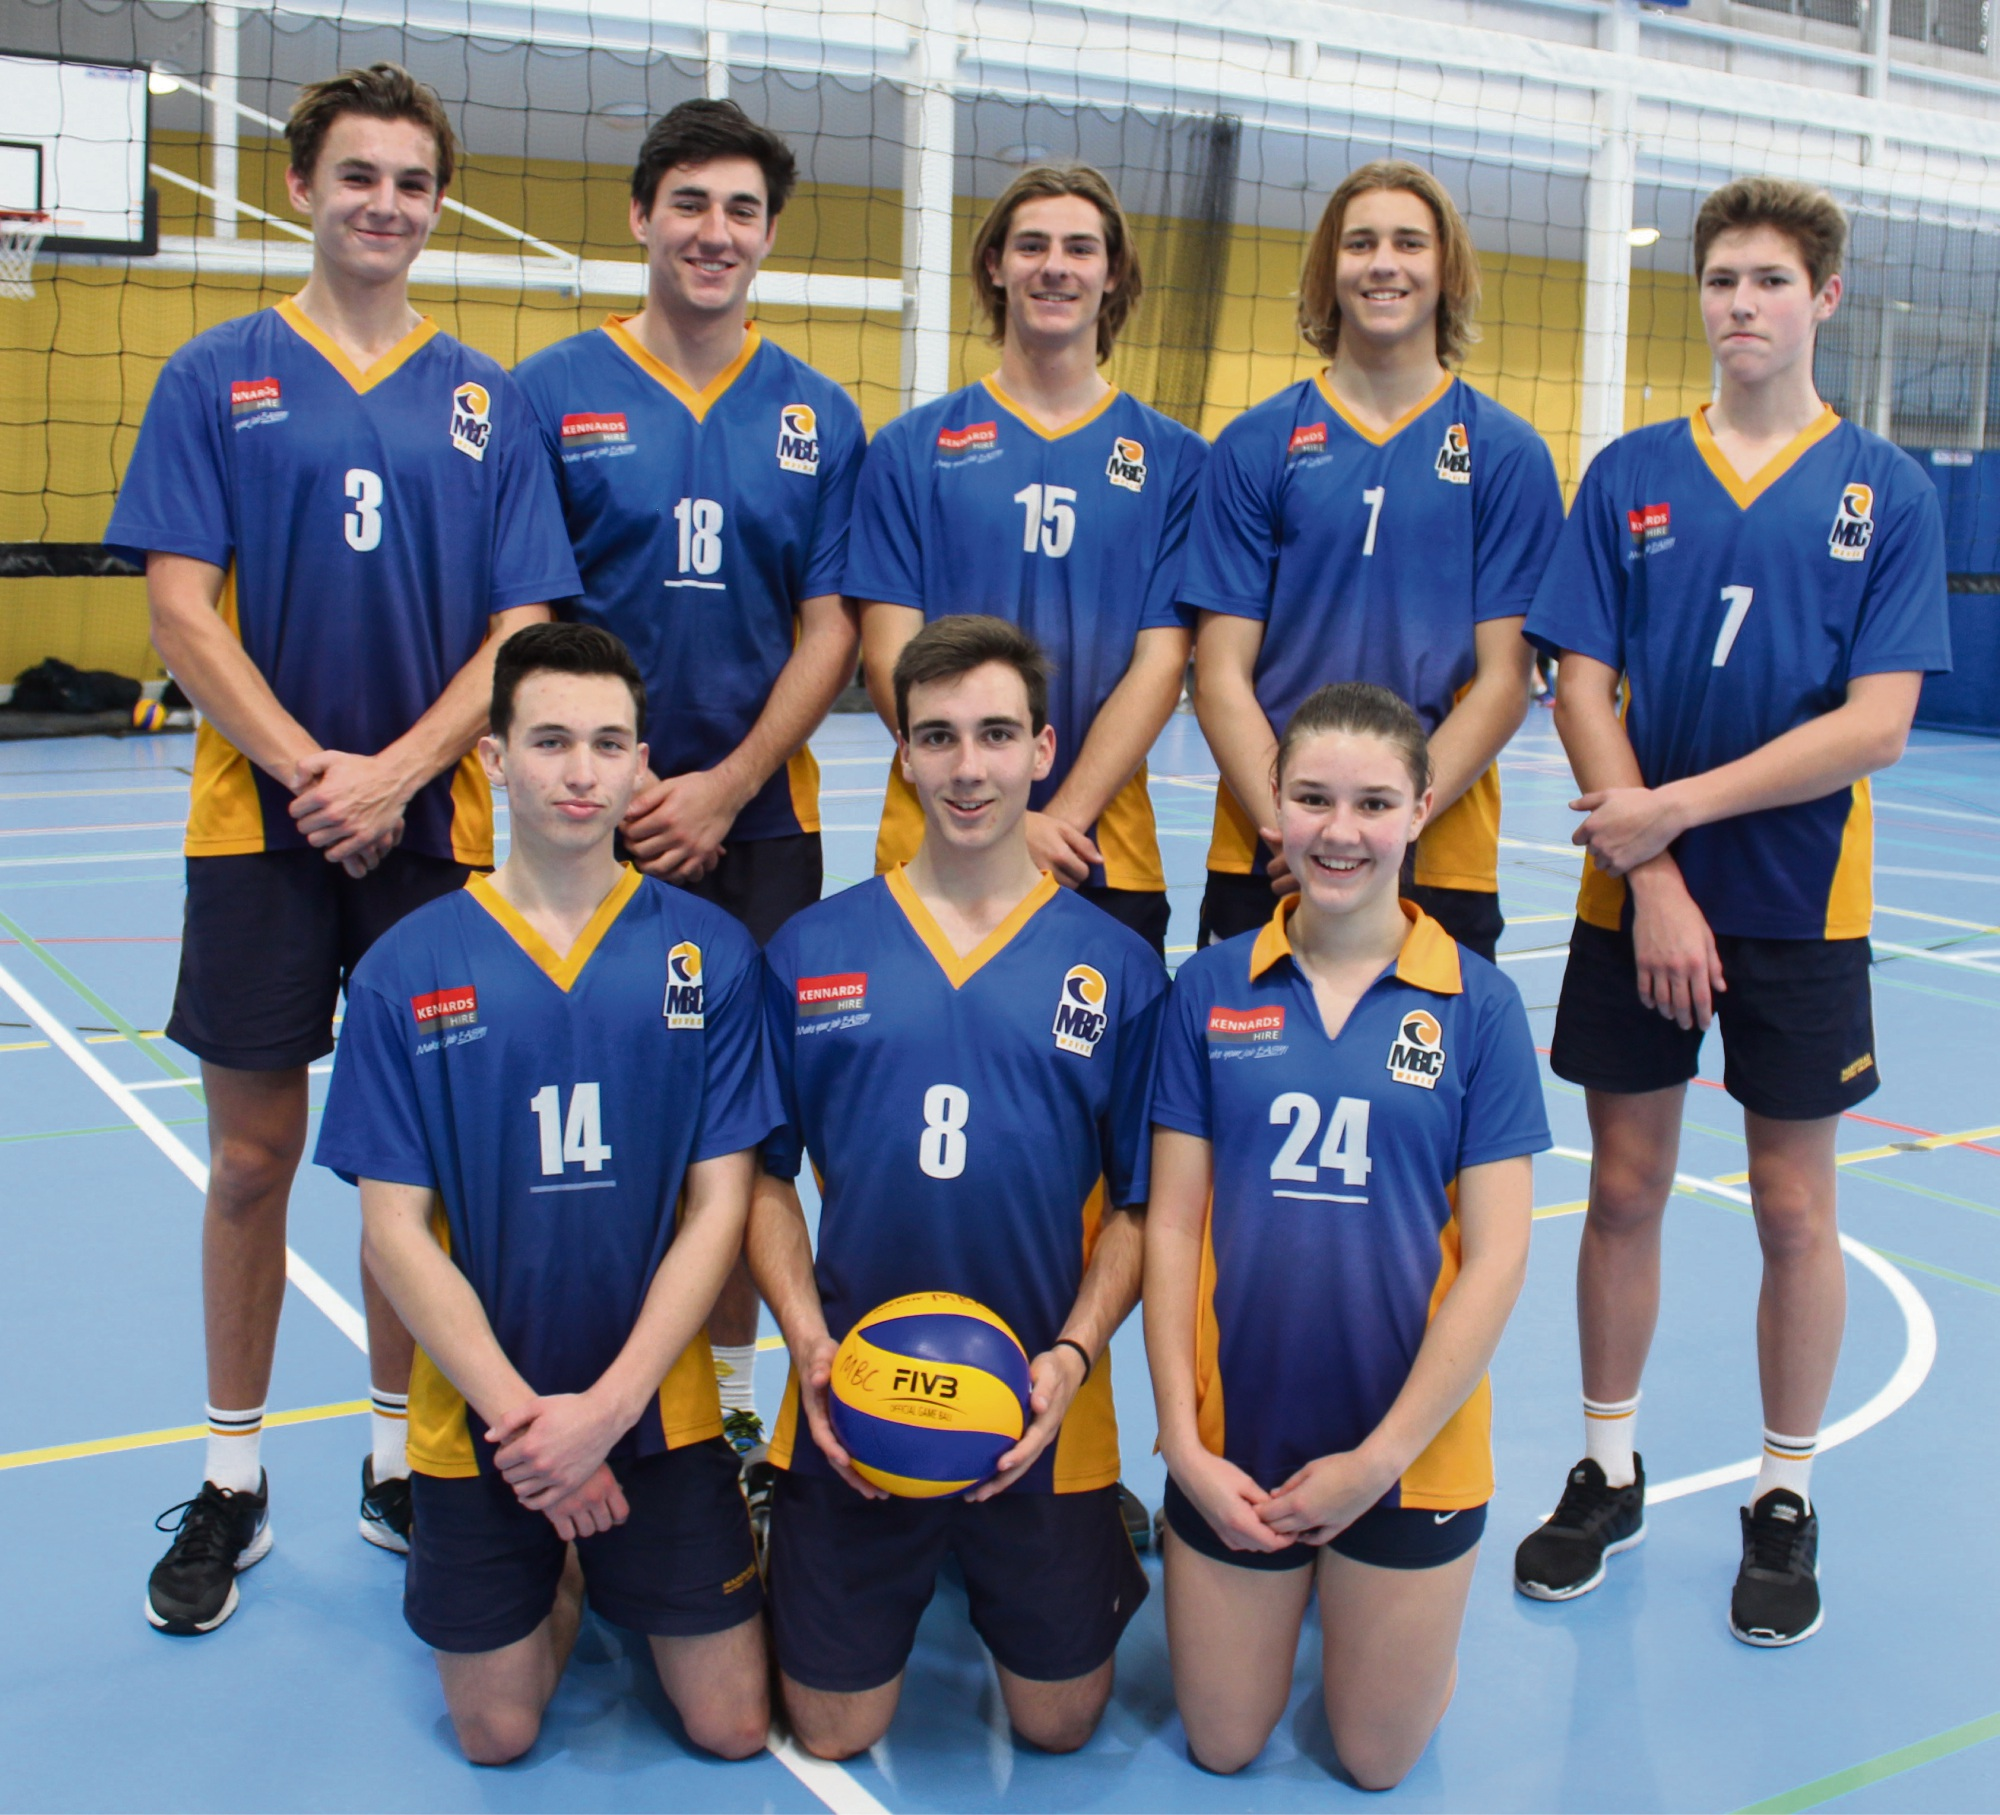 Seven students from Mandurah Baptist College are hard in training for two competitions.